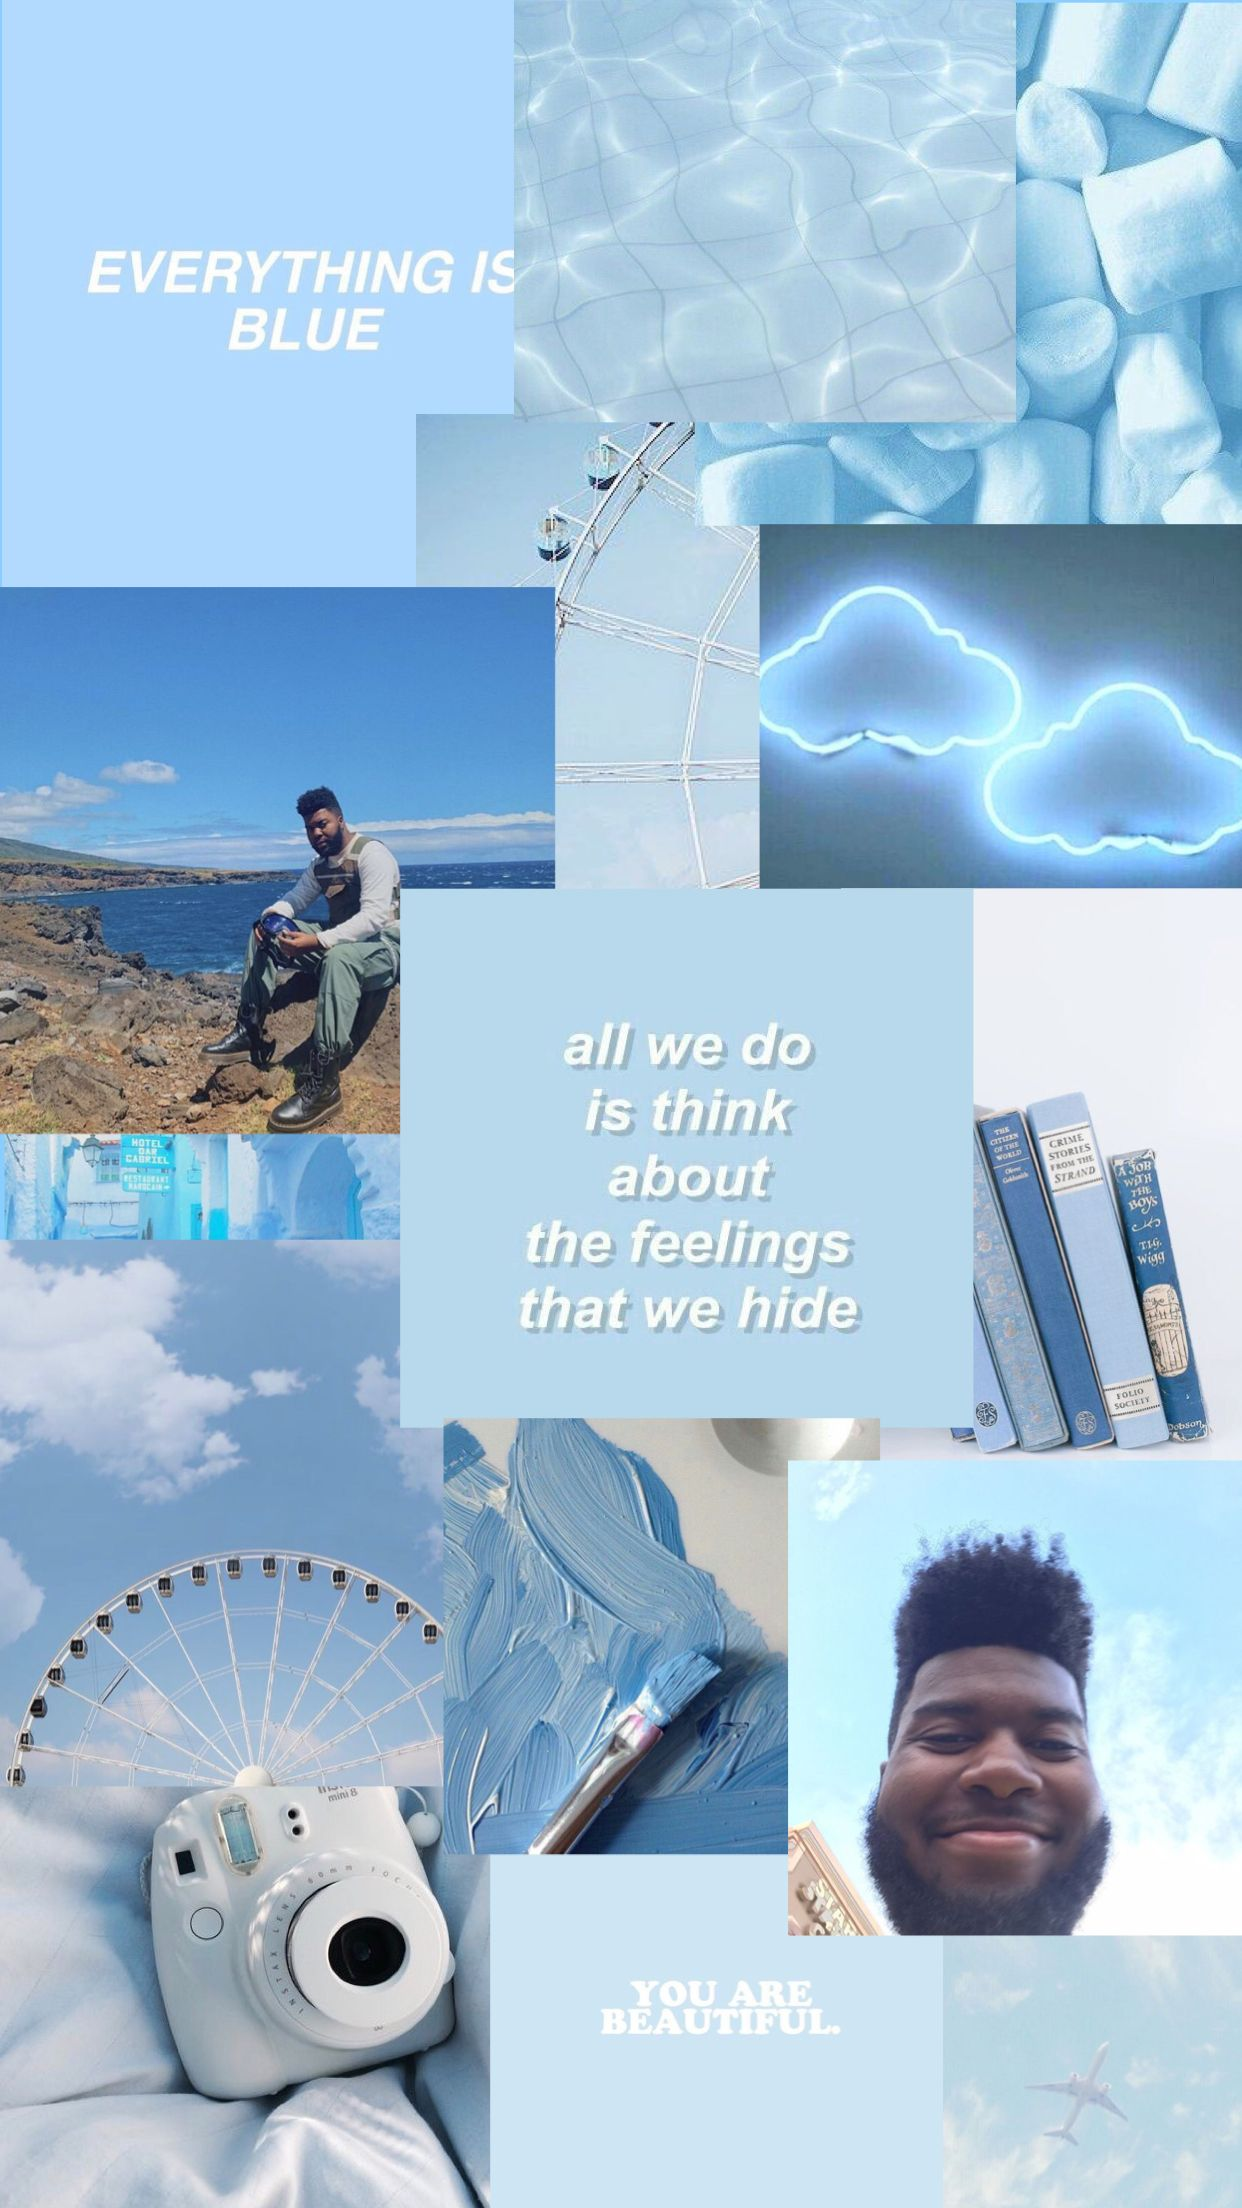 Blue Aesthetic Collage Wallpaper : aesthetic, collage, wallpaper, Khalid, Collage, Wallpaper, Aesthetic,, Aesthetic, Pastel,